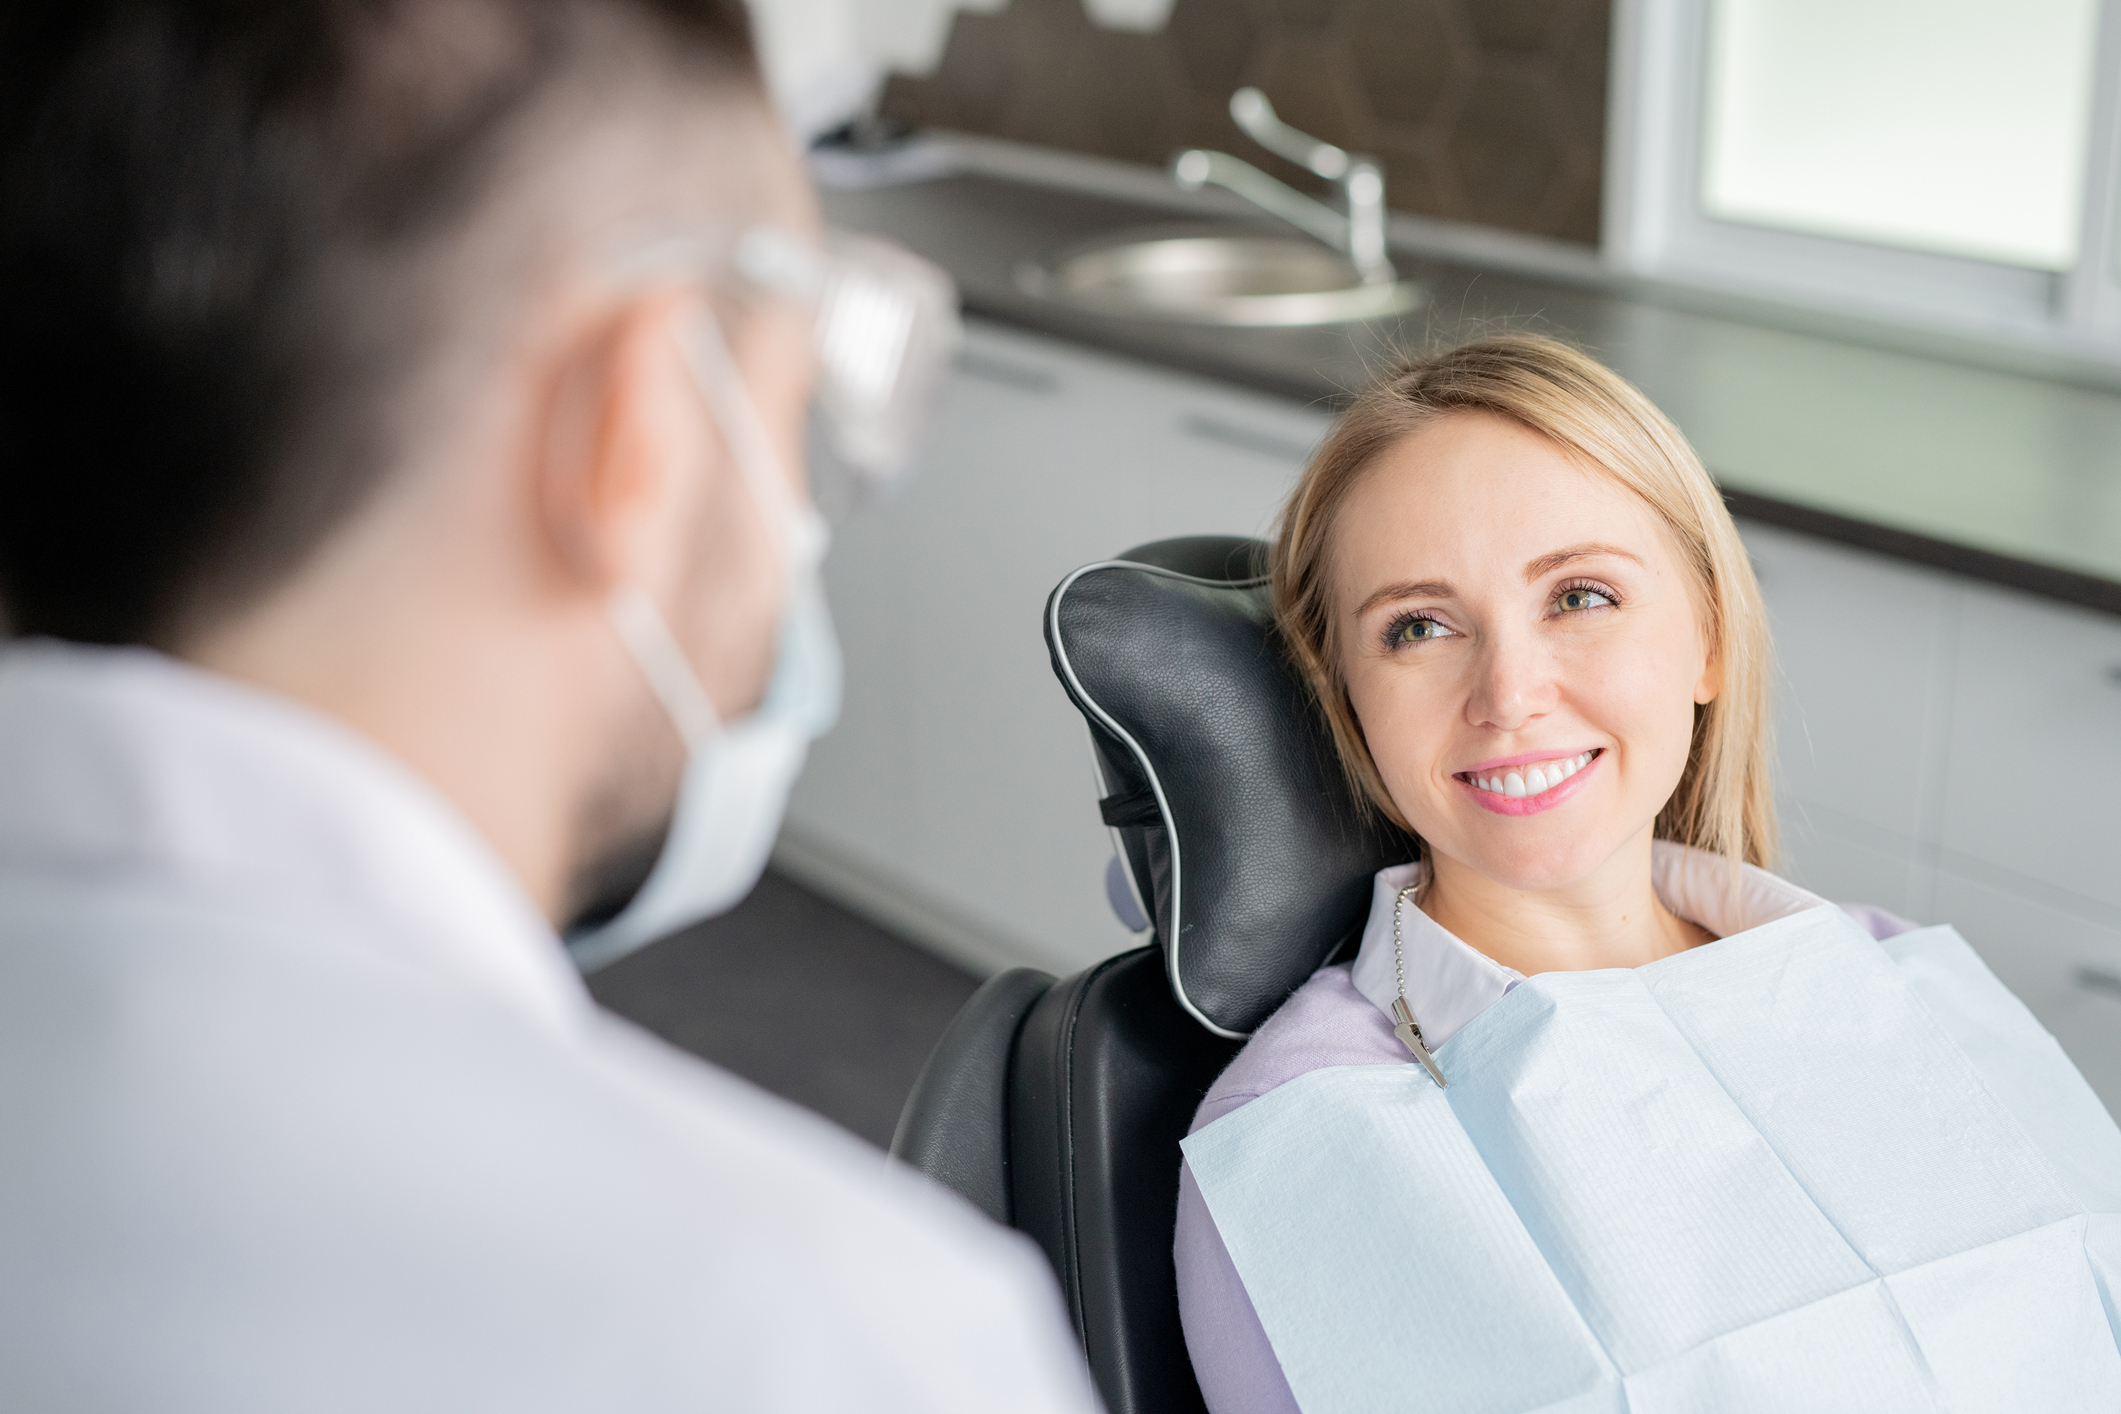 What Can You Expect From a Dental Crowns Procedure?